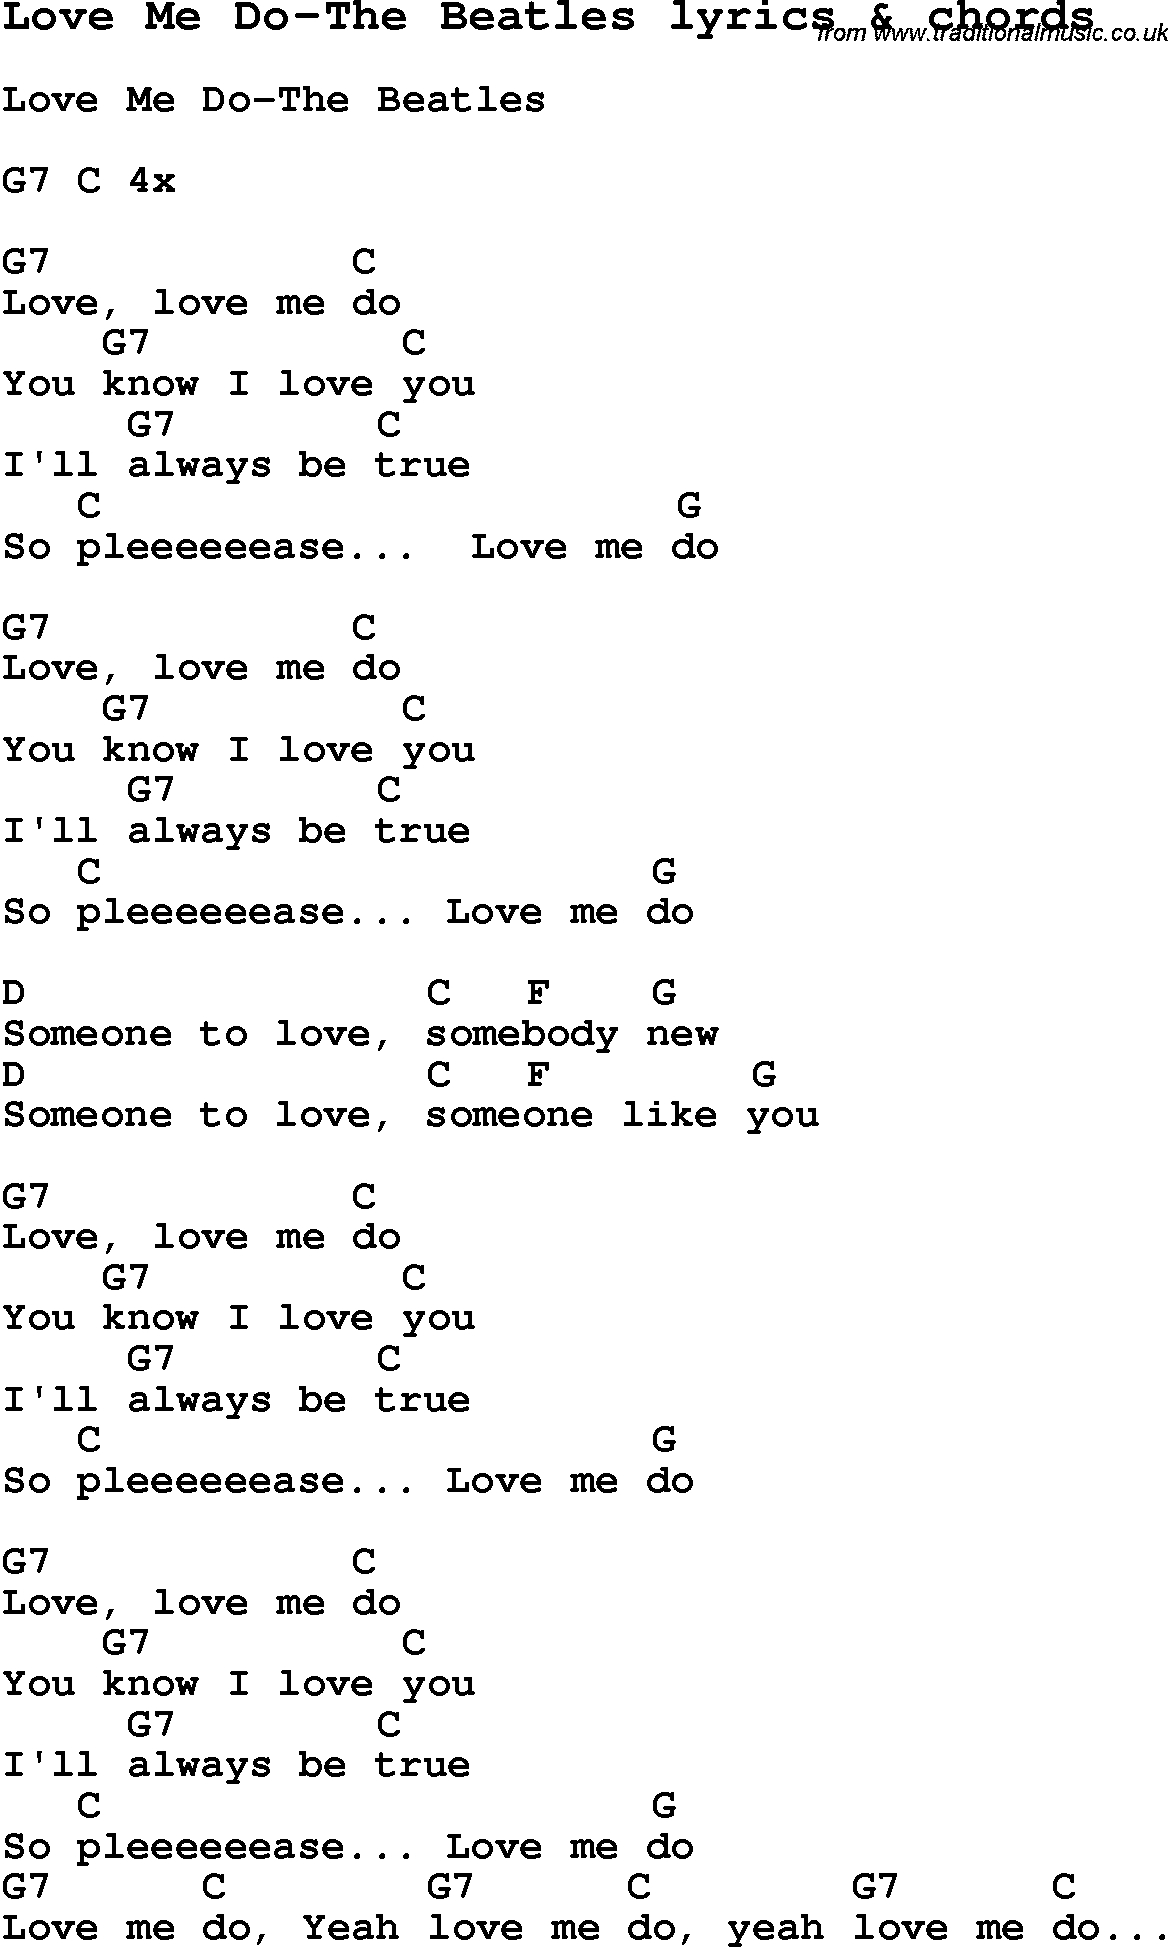 Love Me Like You Do Chords Love Song Lyrics Forlove Me Do The Beatles With Chords